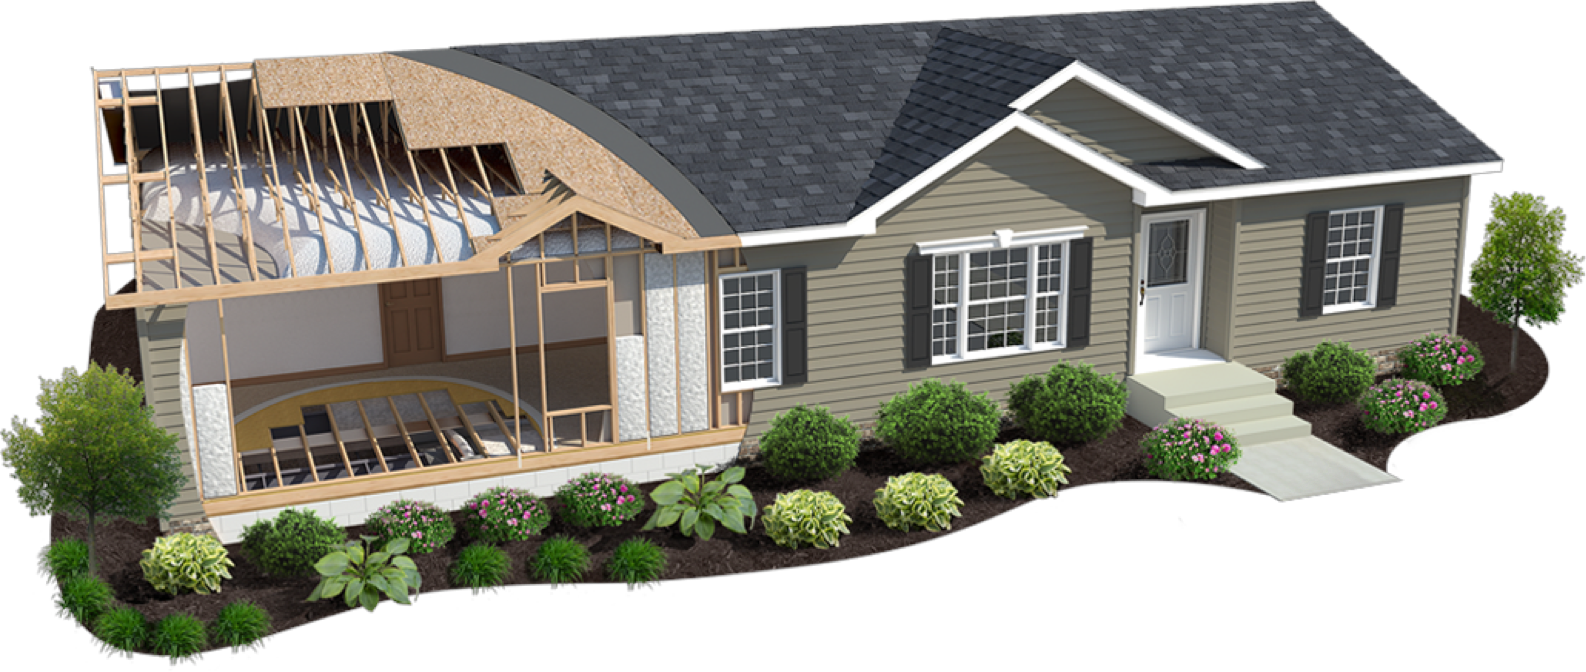 Energy Smart Home Rendering